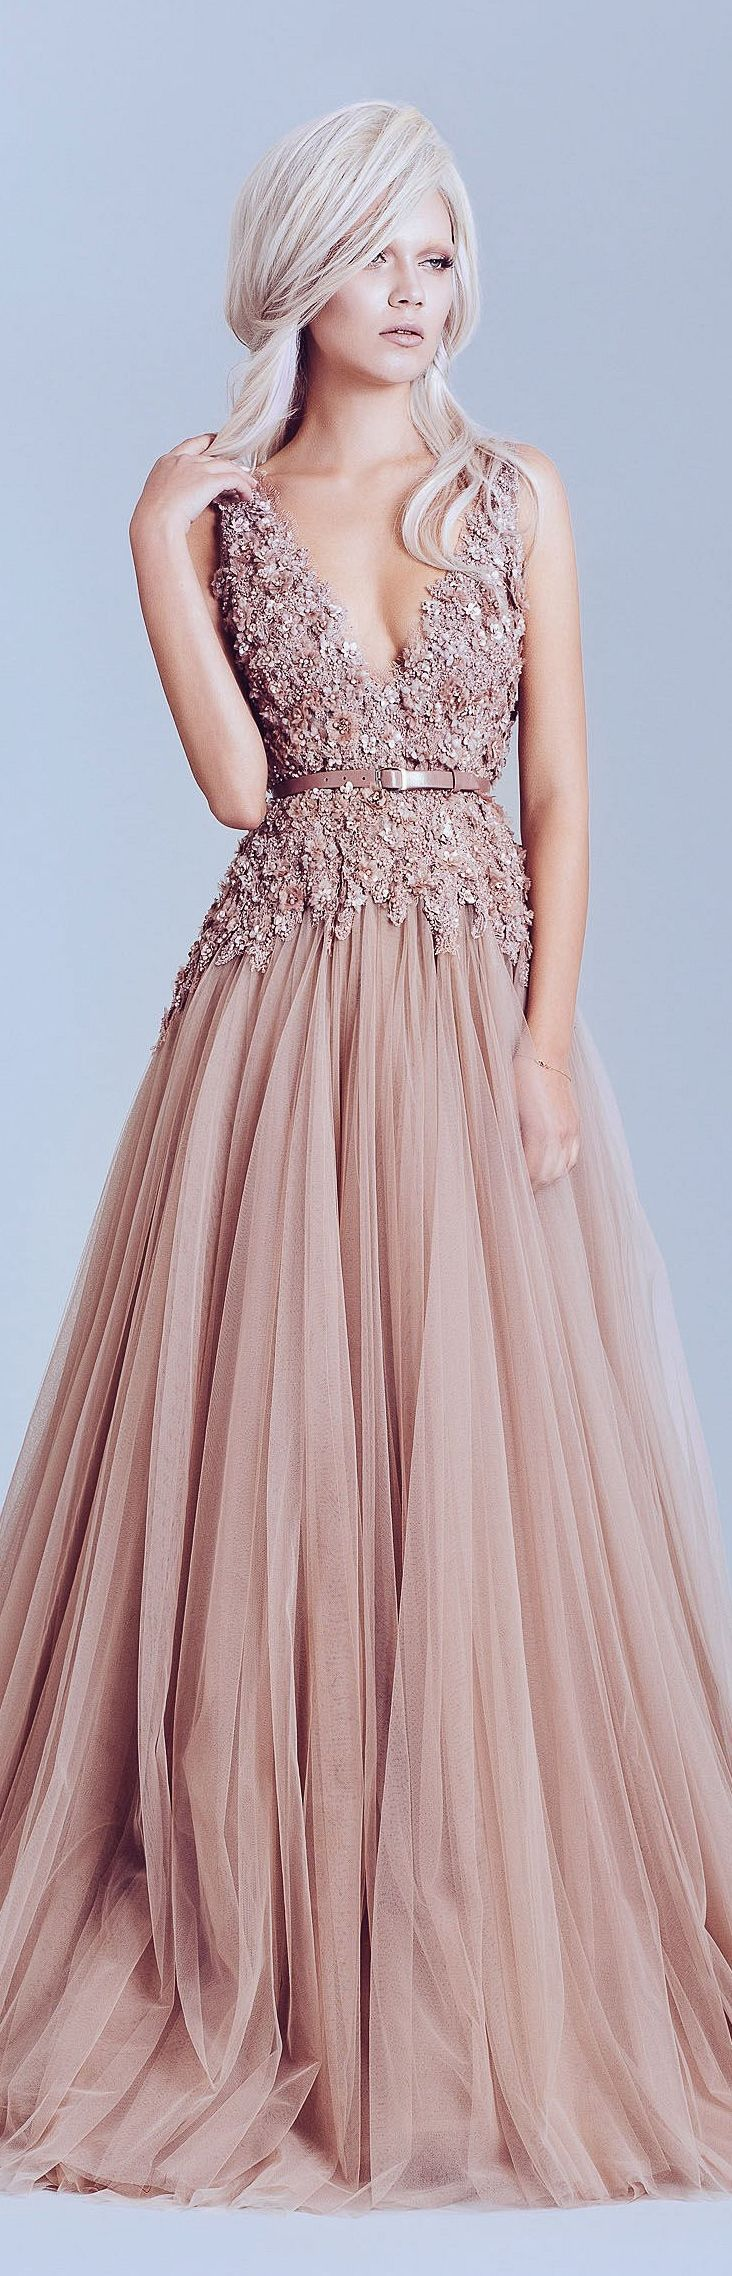 Nude and blush gowns pinterest blush gown couture and gowns